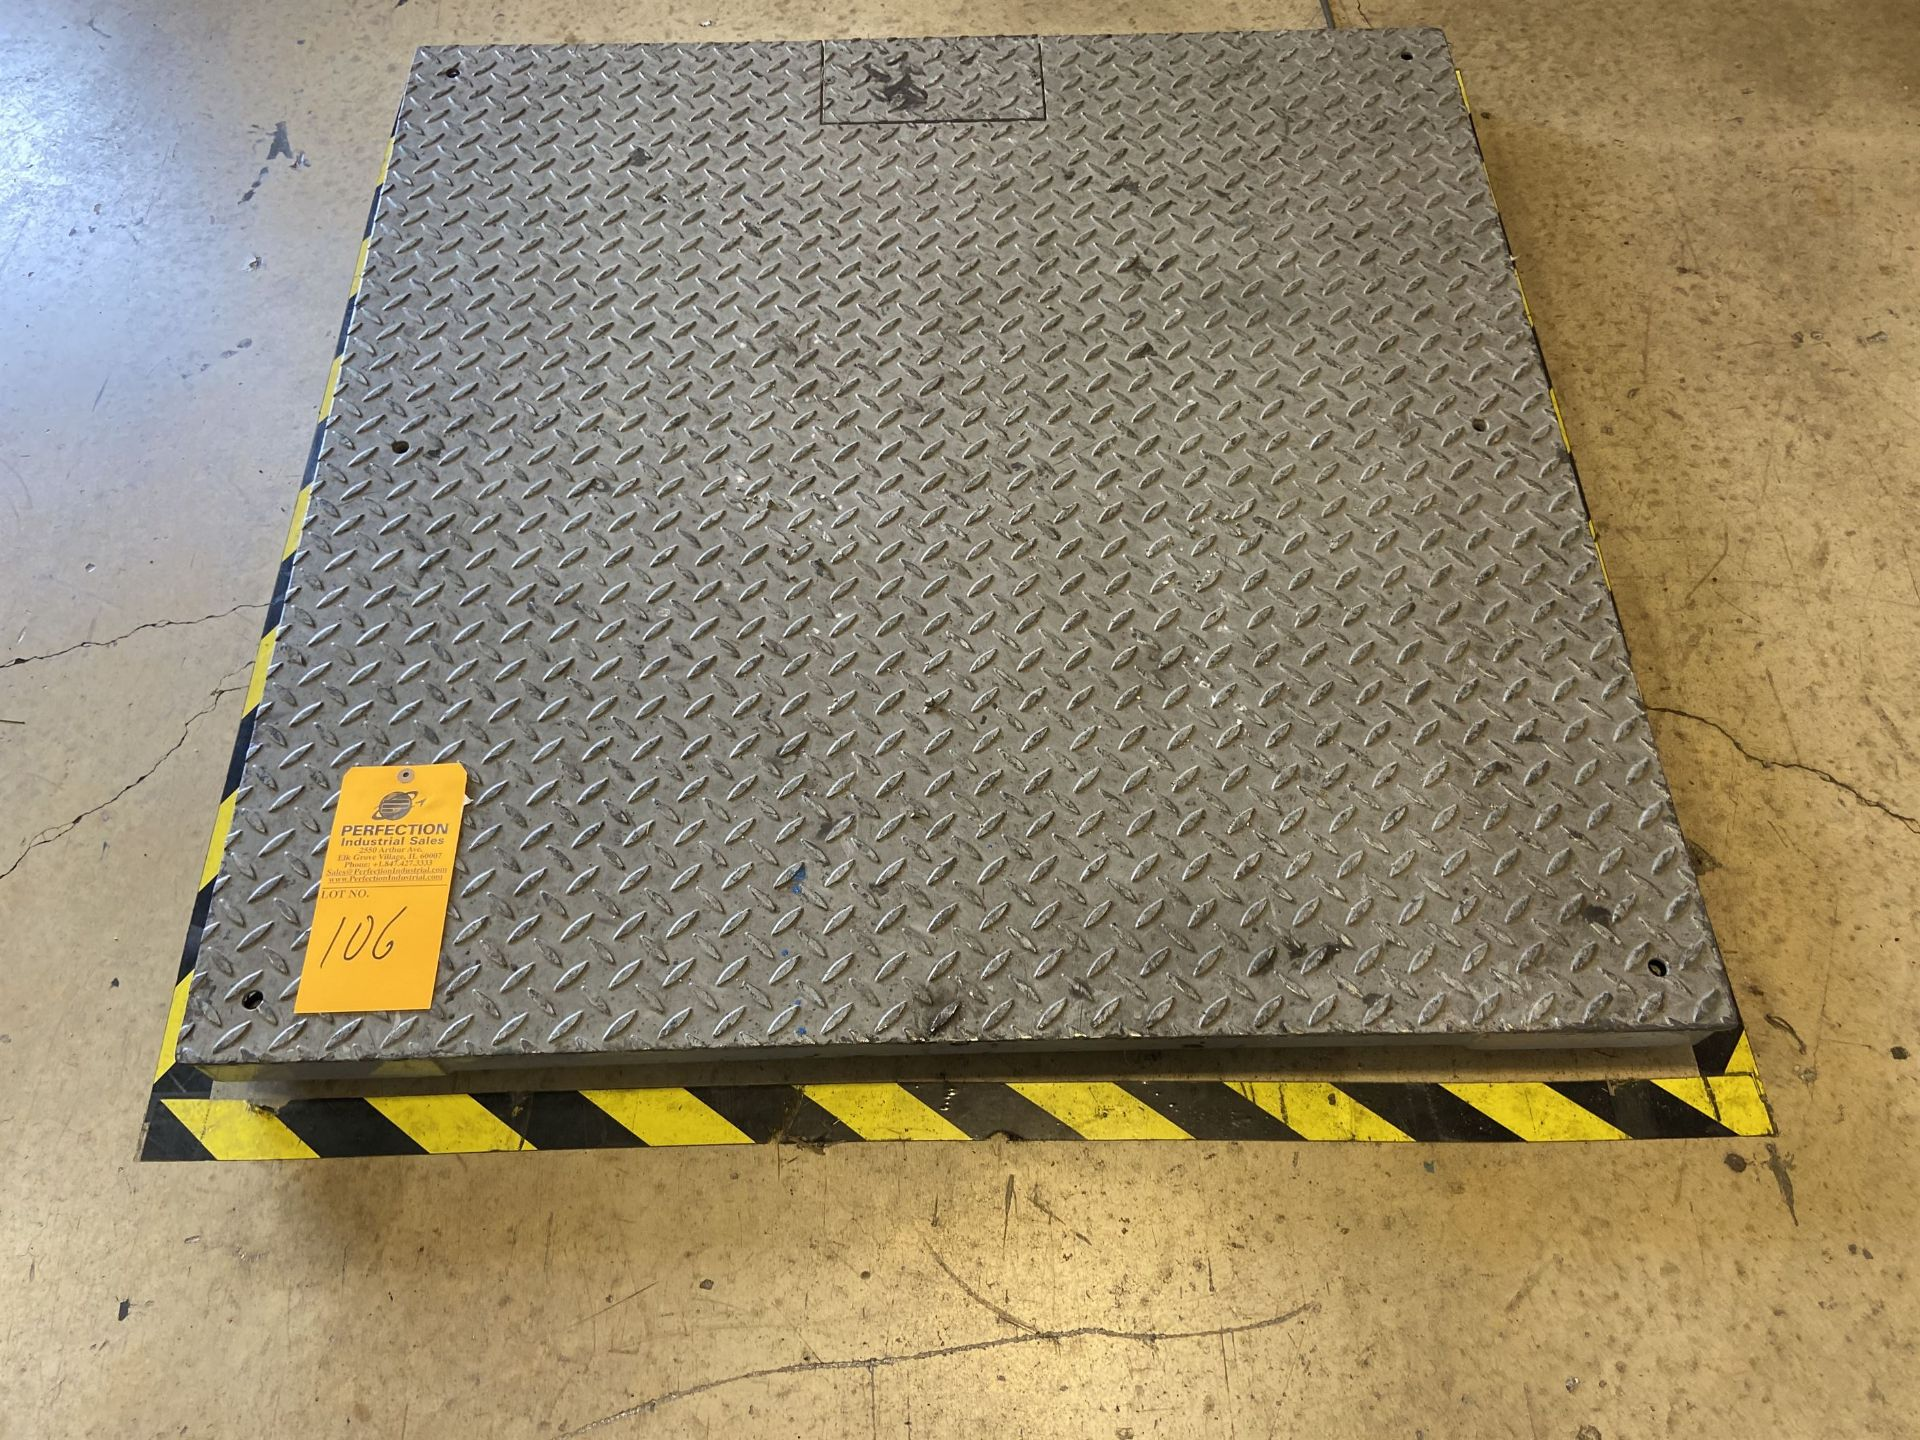 4x4 Scale with Bench Reader and Shipping Area